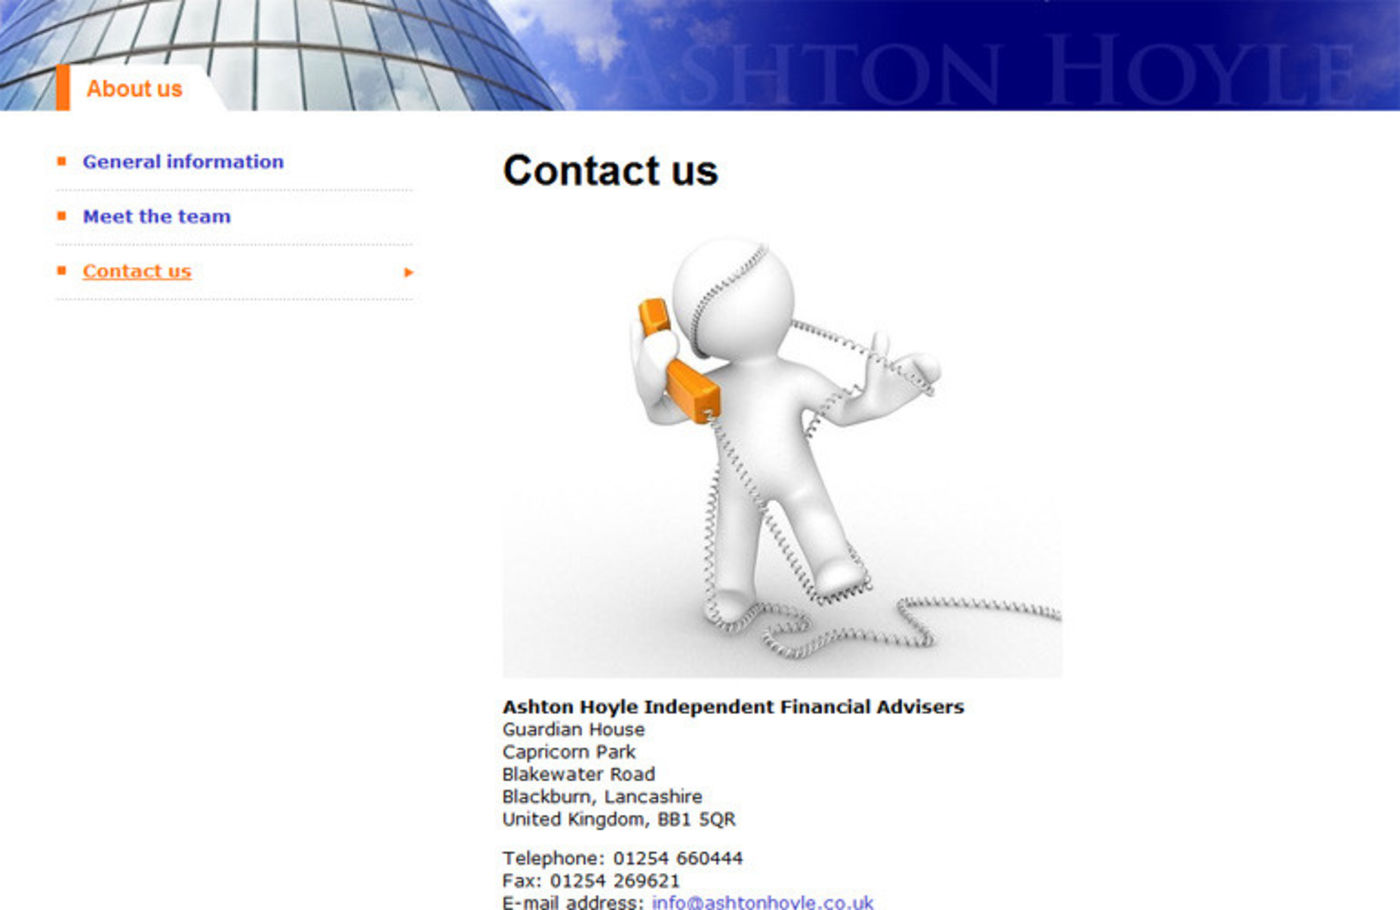 Ashton Hoyle Independent Financial Advisers Contact us - Ashton Hoyle